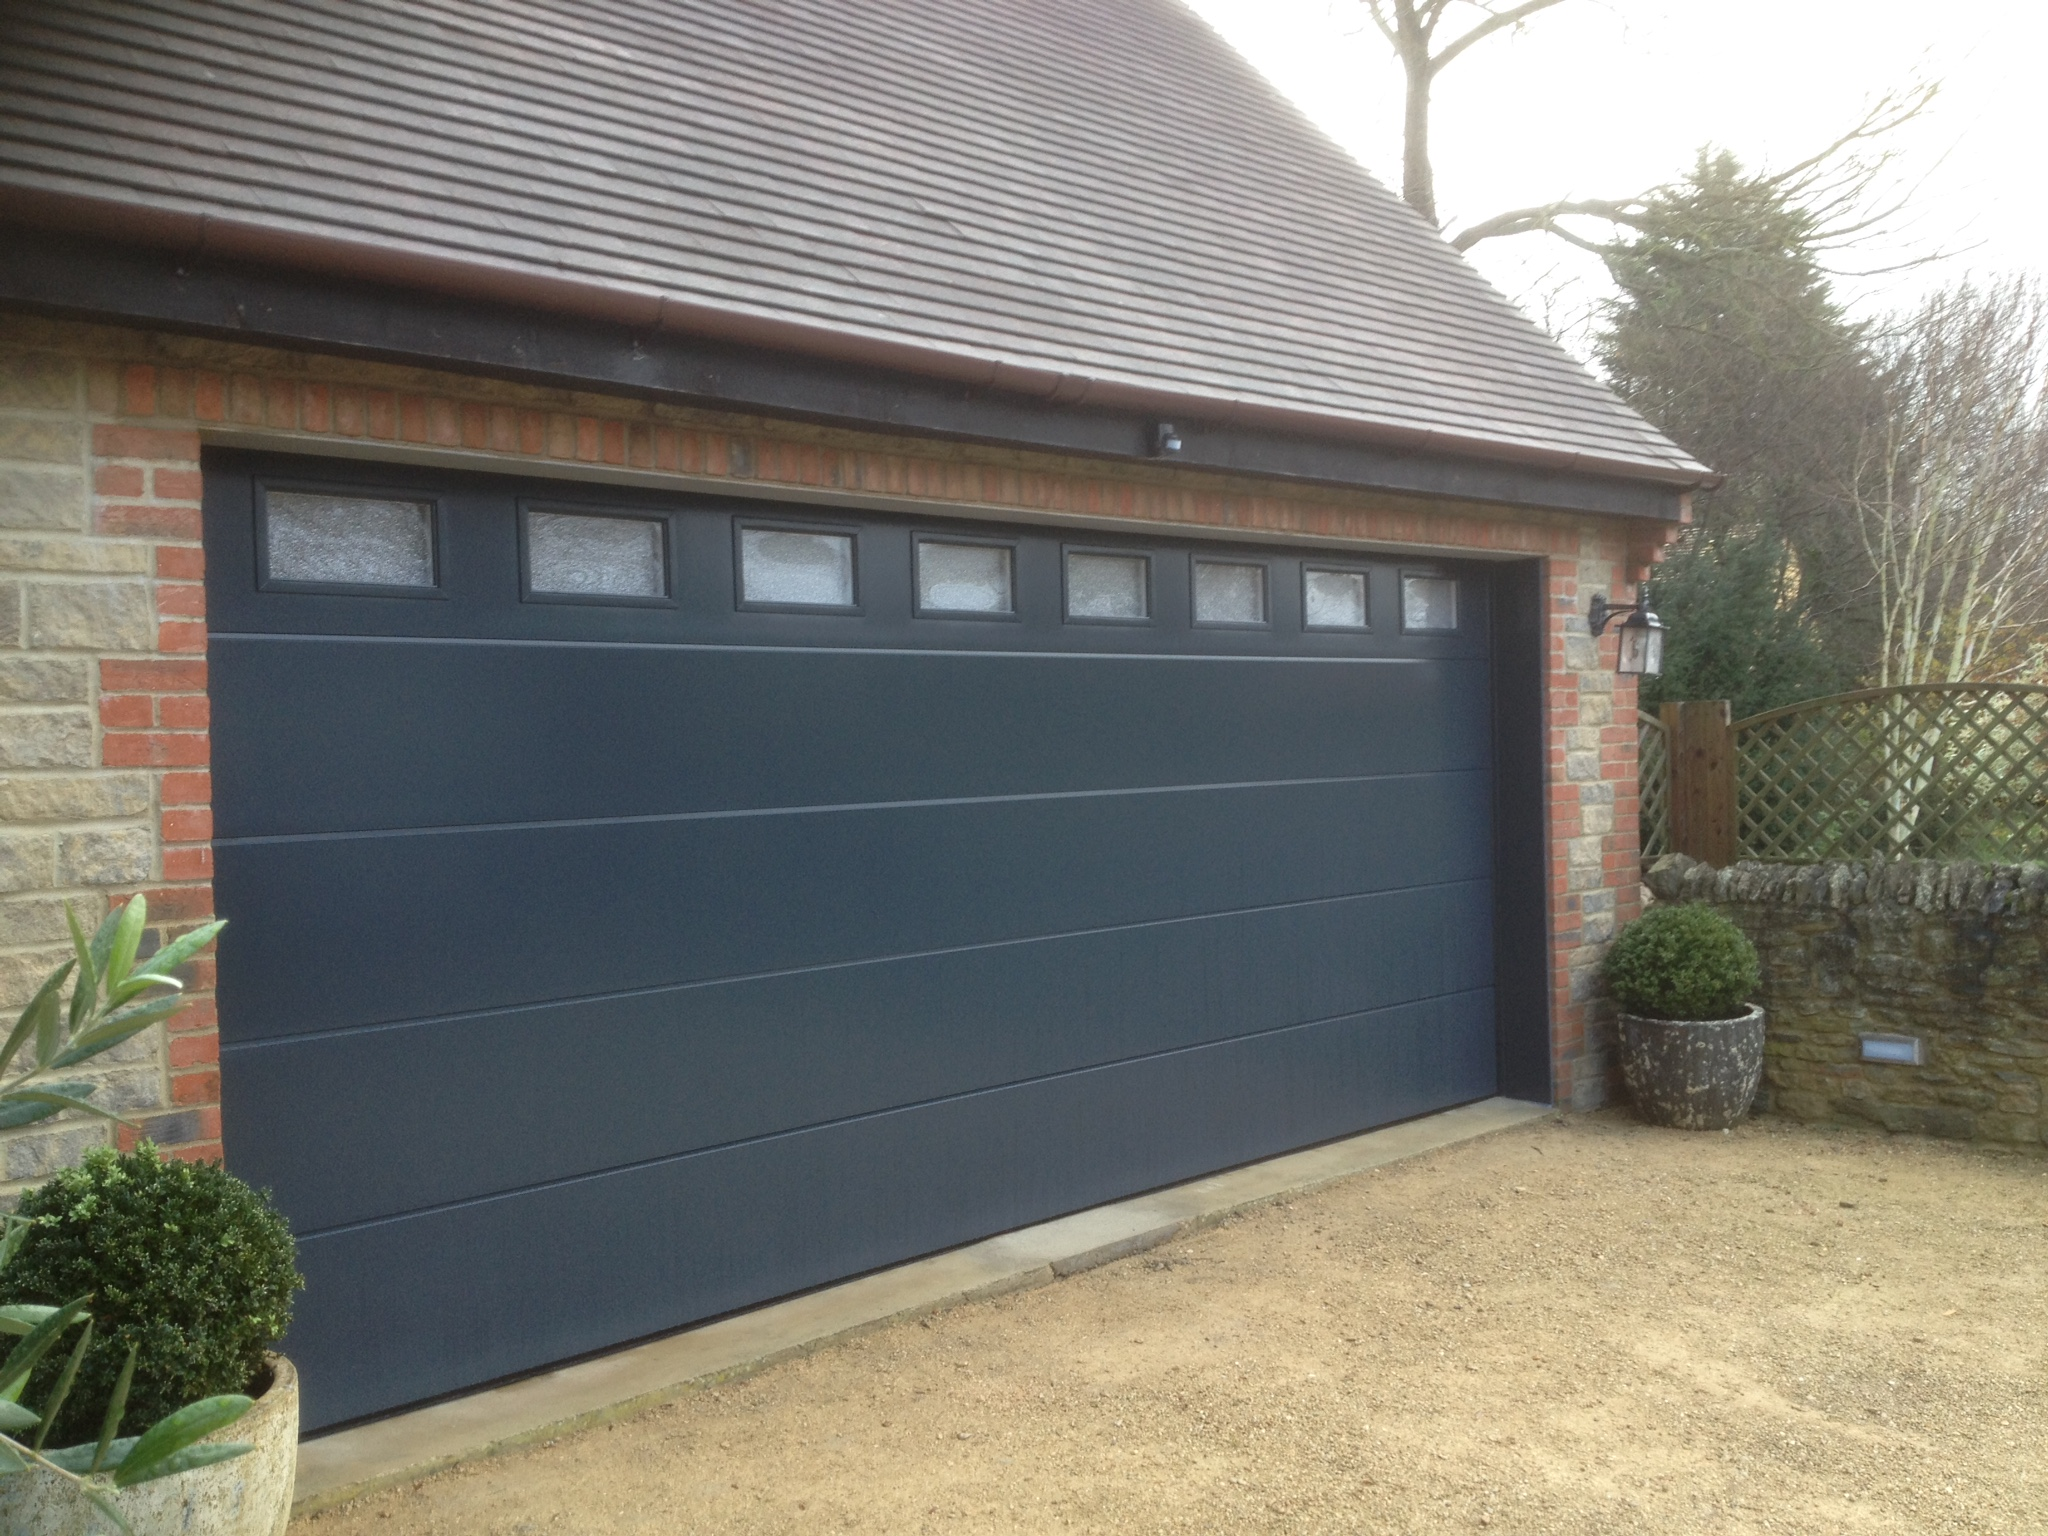 Sectional garage door with windows anthracite grey flush smooth sectional with windows rubansaba